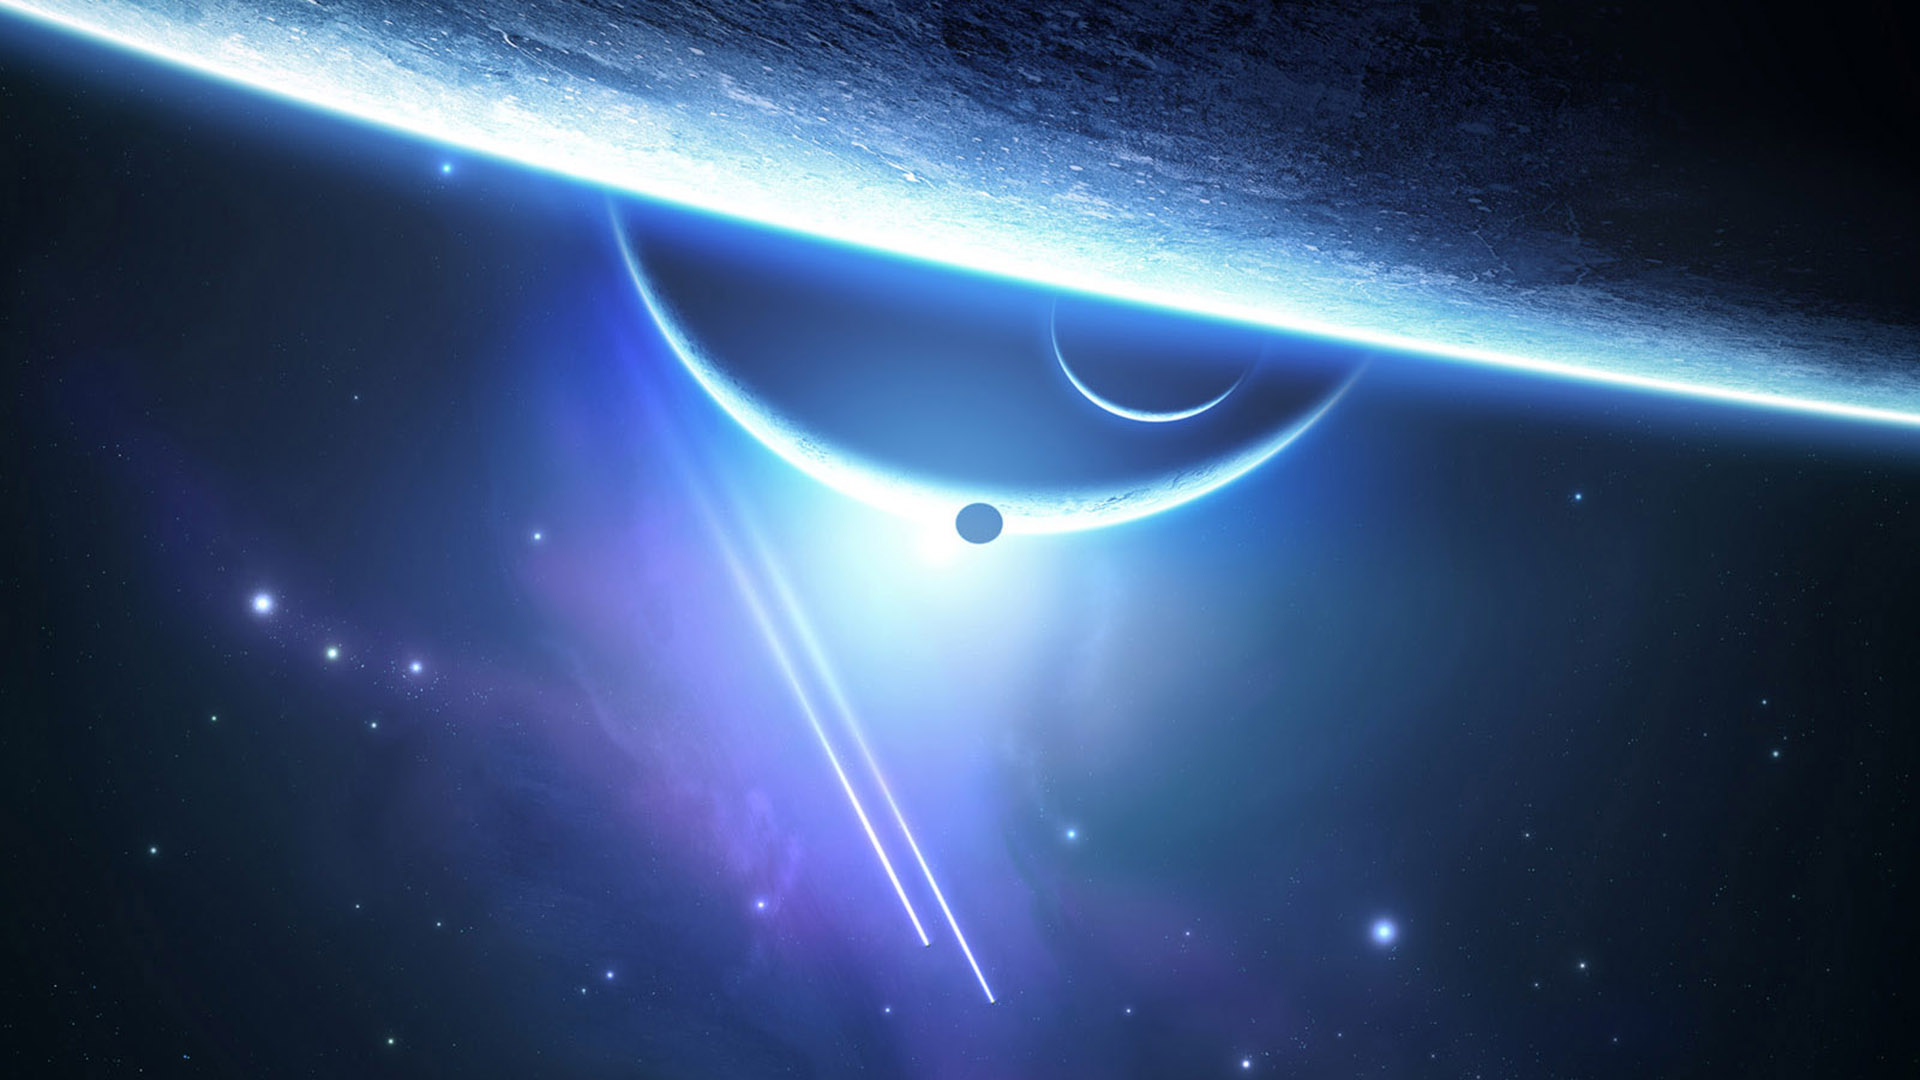 space-sci-fi-hd-wallpaper | wallpapers55.com - Best Wallpapers for PCs ...